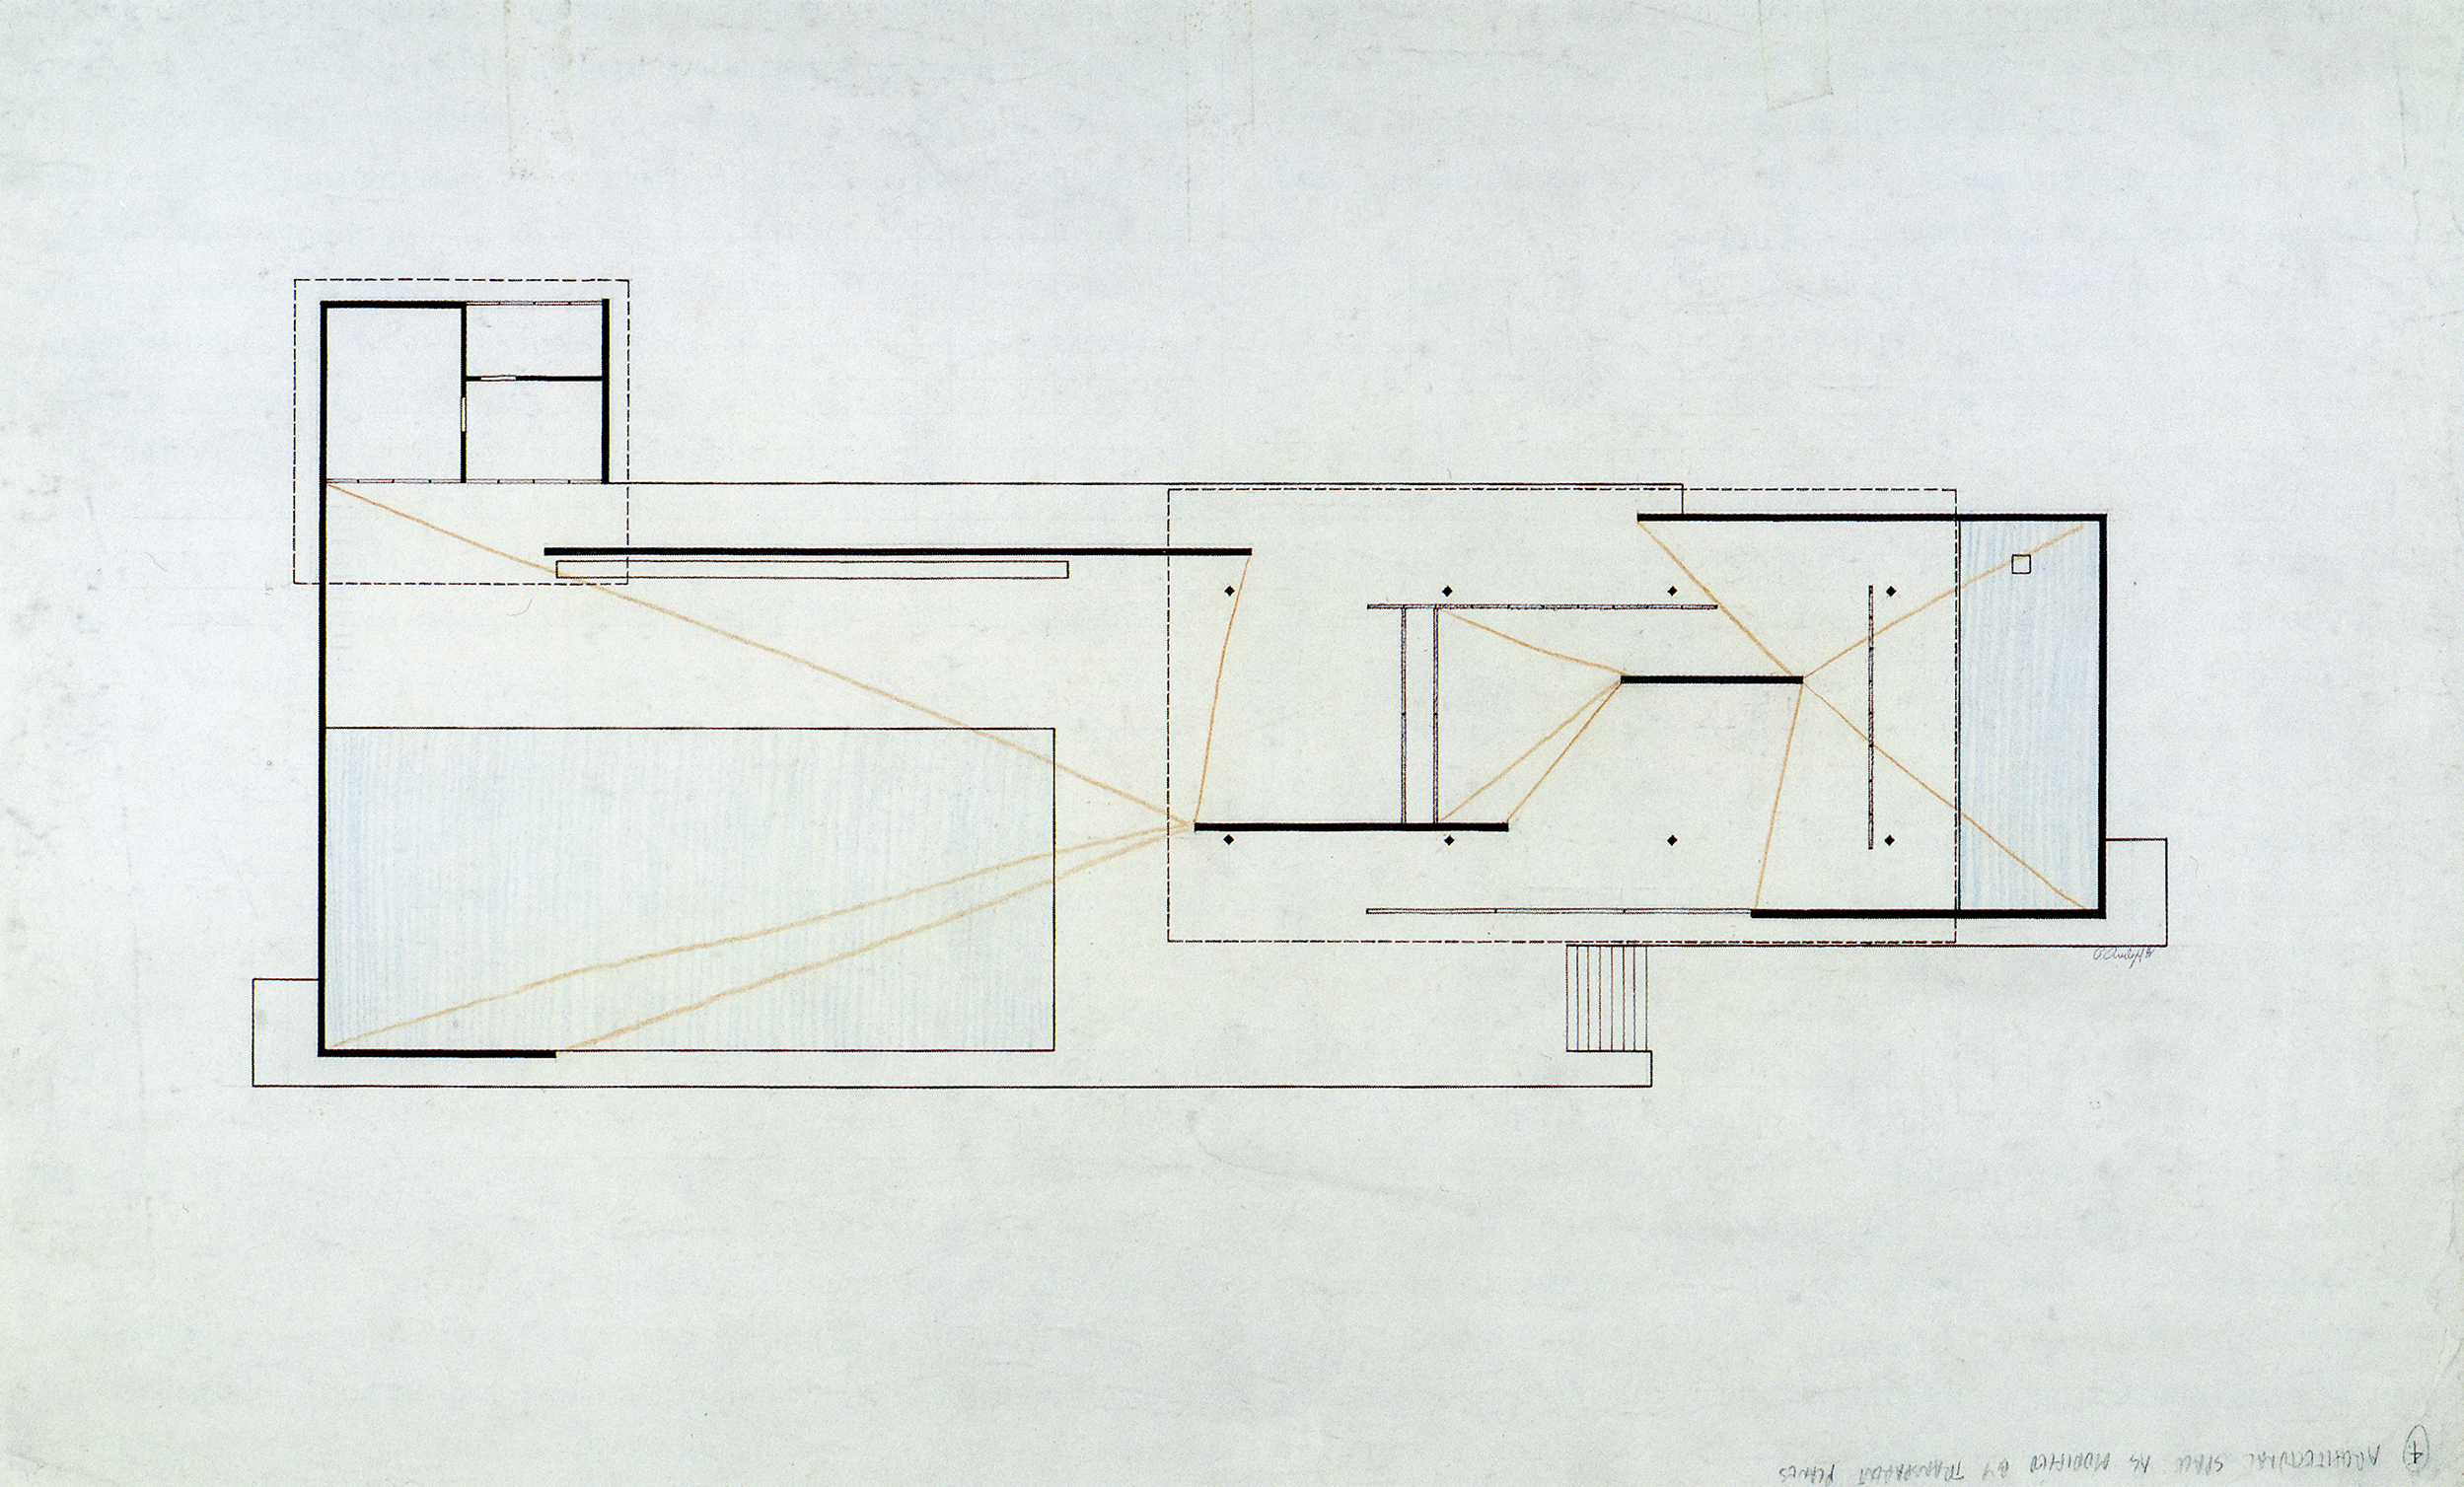 'Architectural Space As Modified By Transparent Planes' - Paul Rudolph's graphic analysis of Mies's Barcelona Pavilion. Image from the Archives of the Paul Rudolph Heritage Foundation.